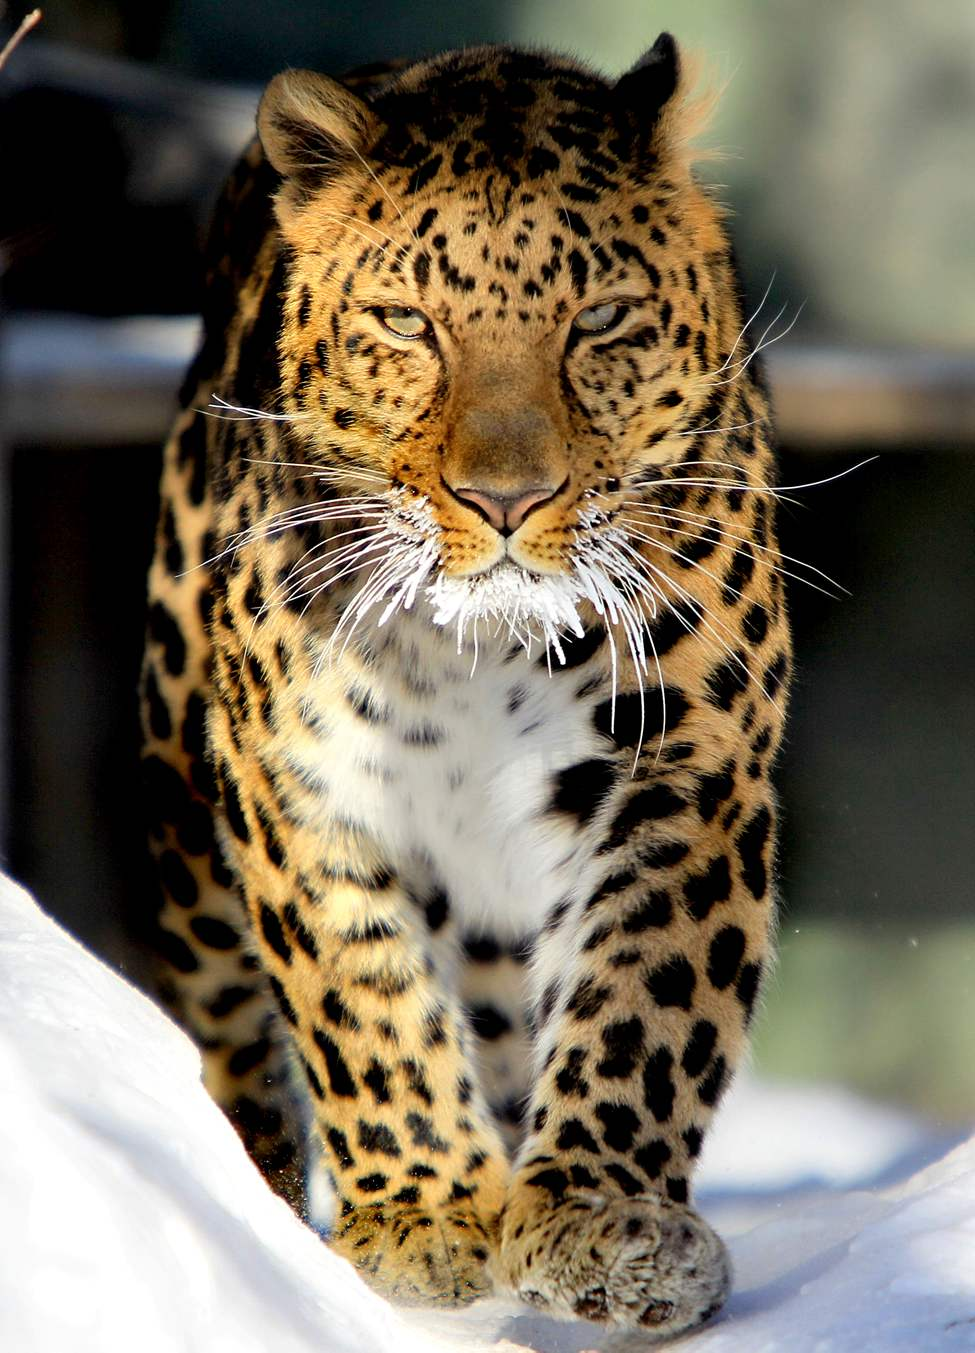 An Amur Leopard prances back and forth with snow-white whiskers Tuesday morning at the Assiniboine Park Zoo.  The Amur leopard is a critically endangered subspecies found mostly in temperate mixed forest and woodland areas in southeastern Russia, northern China and North Korea.